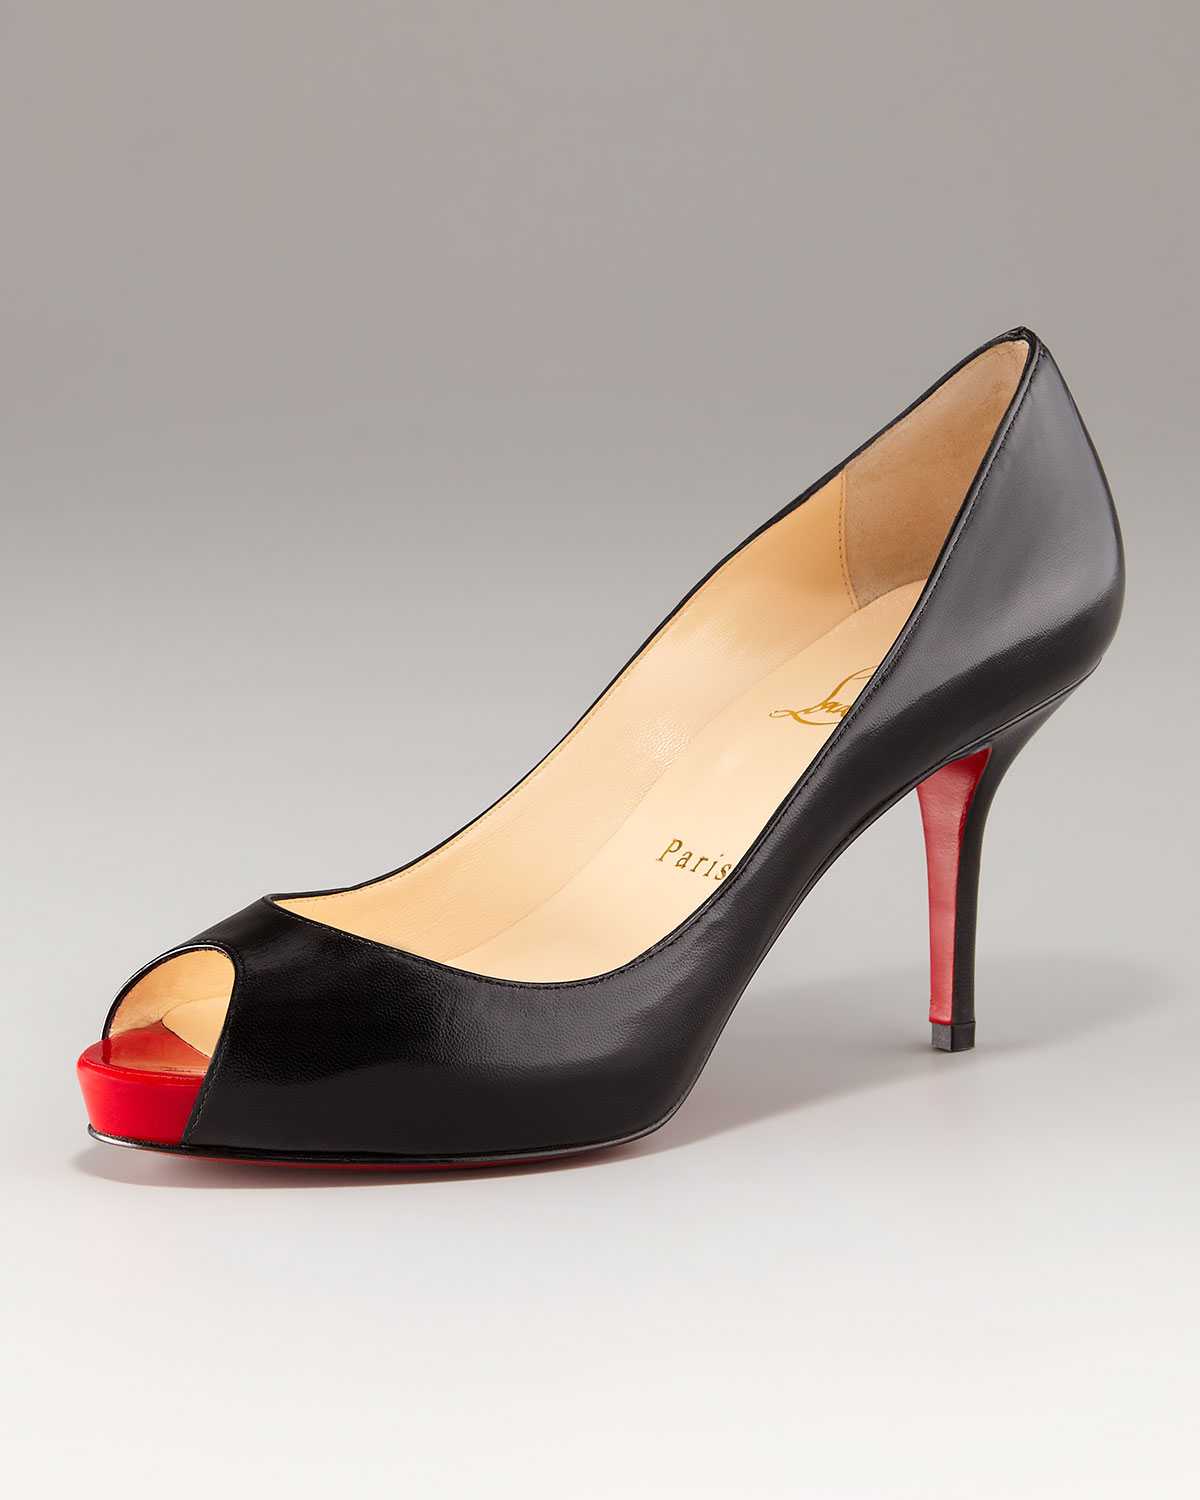 Lyst - Christian Louboutin Mater Claude Open-toe Mid-heel Pump in Black fc48d7978a